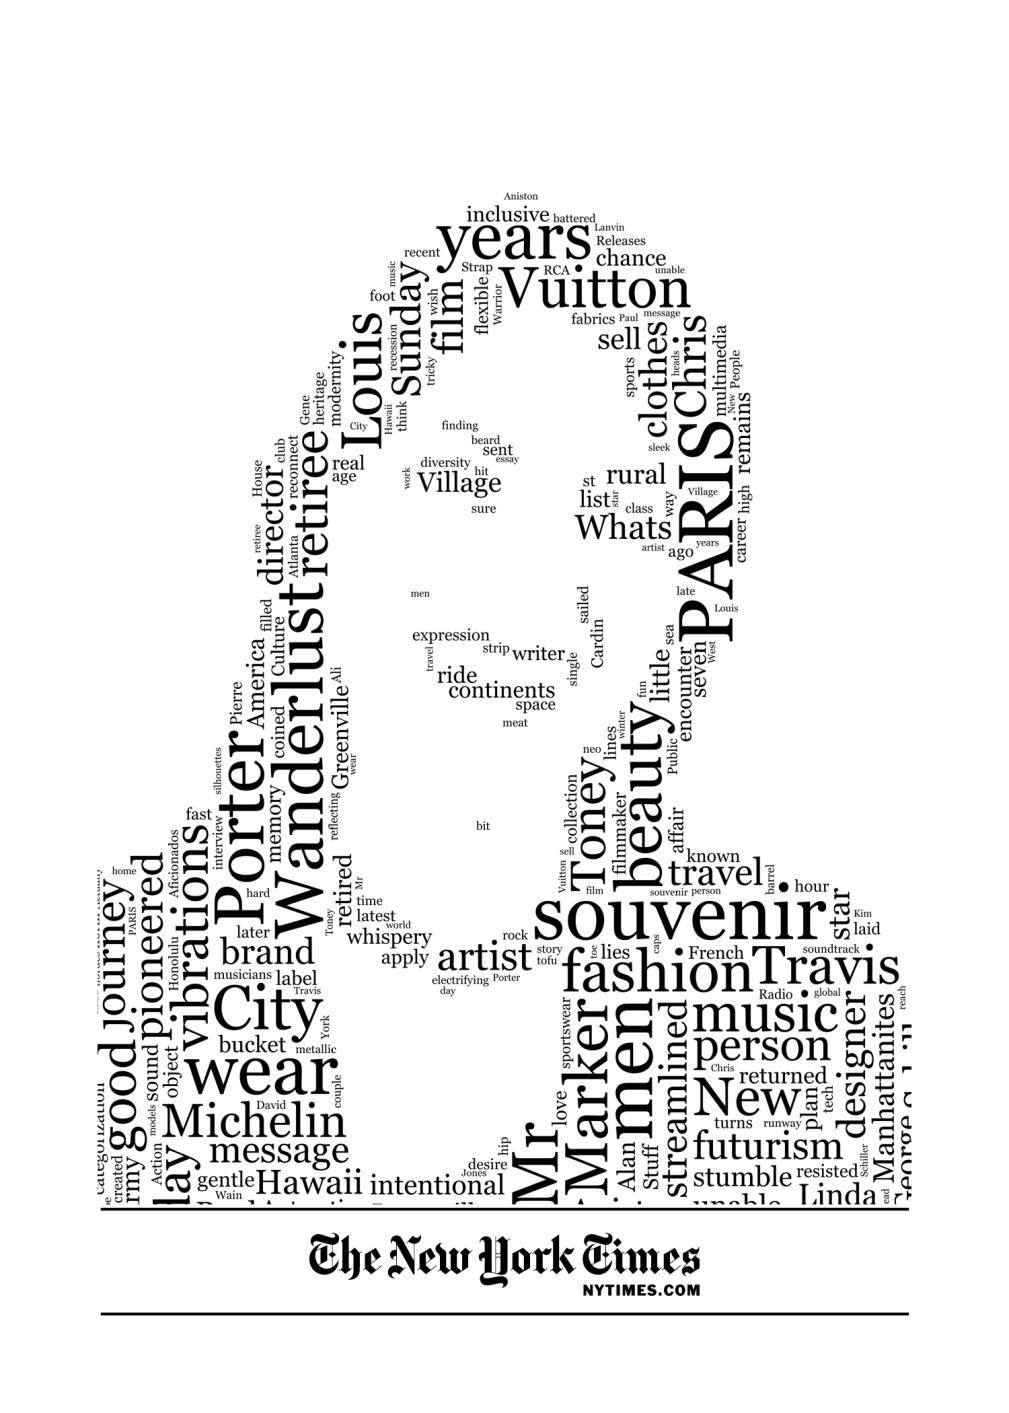 Have Your Nytimes Word Cloud Portrait Taken At Sla 2013